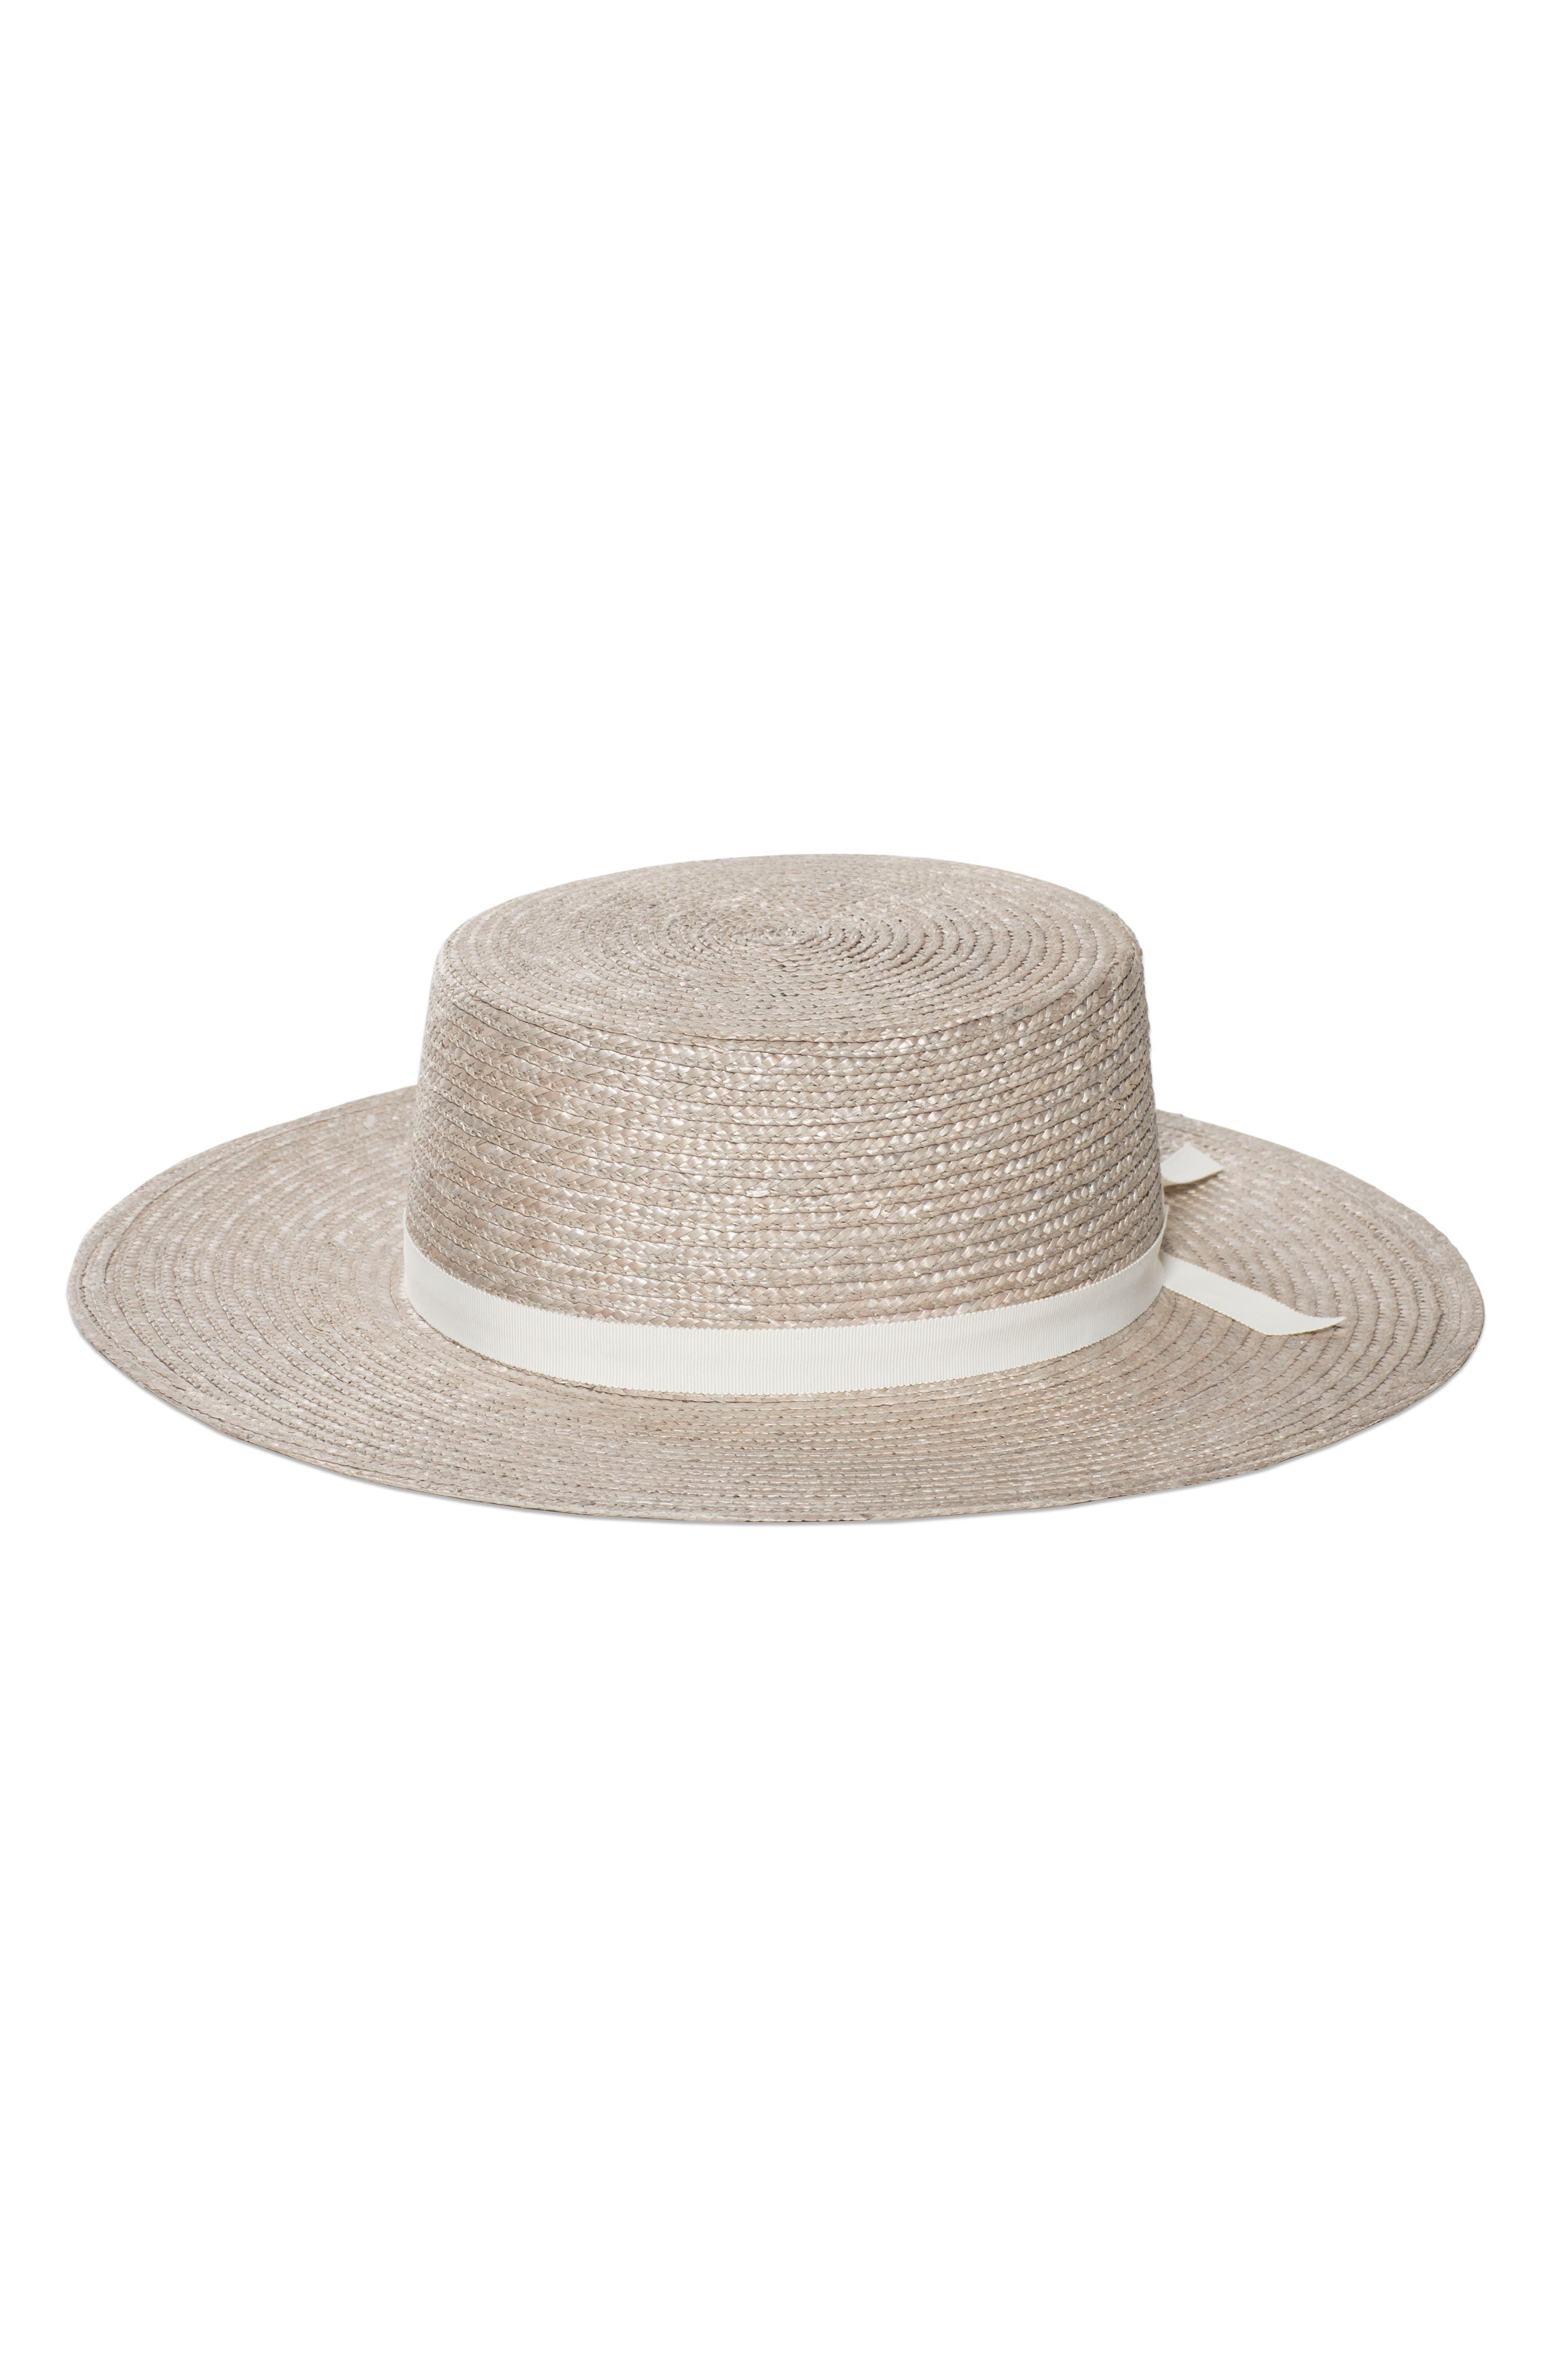 THE HIGHLAND STRAW BOATER HAT - METALLIC